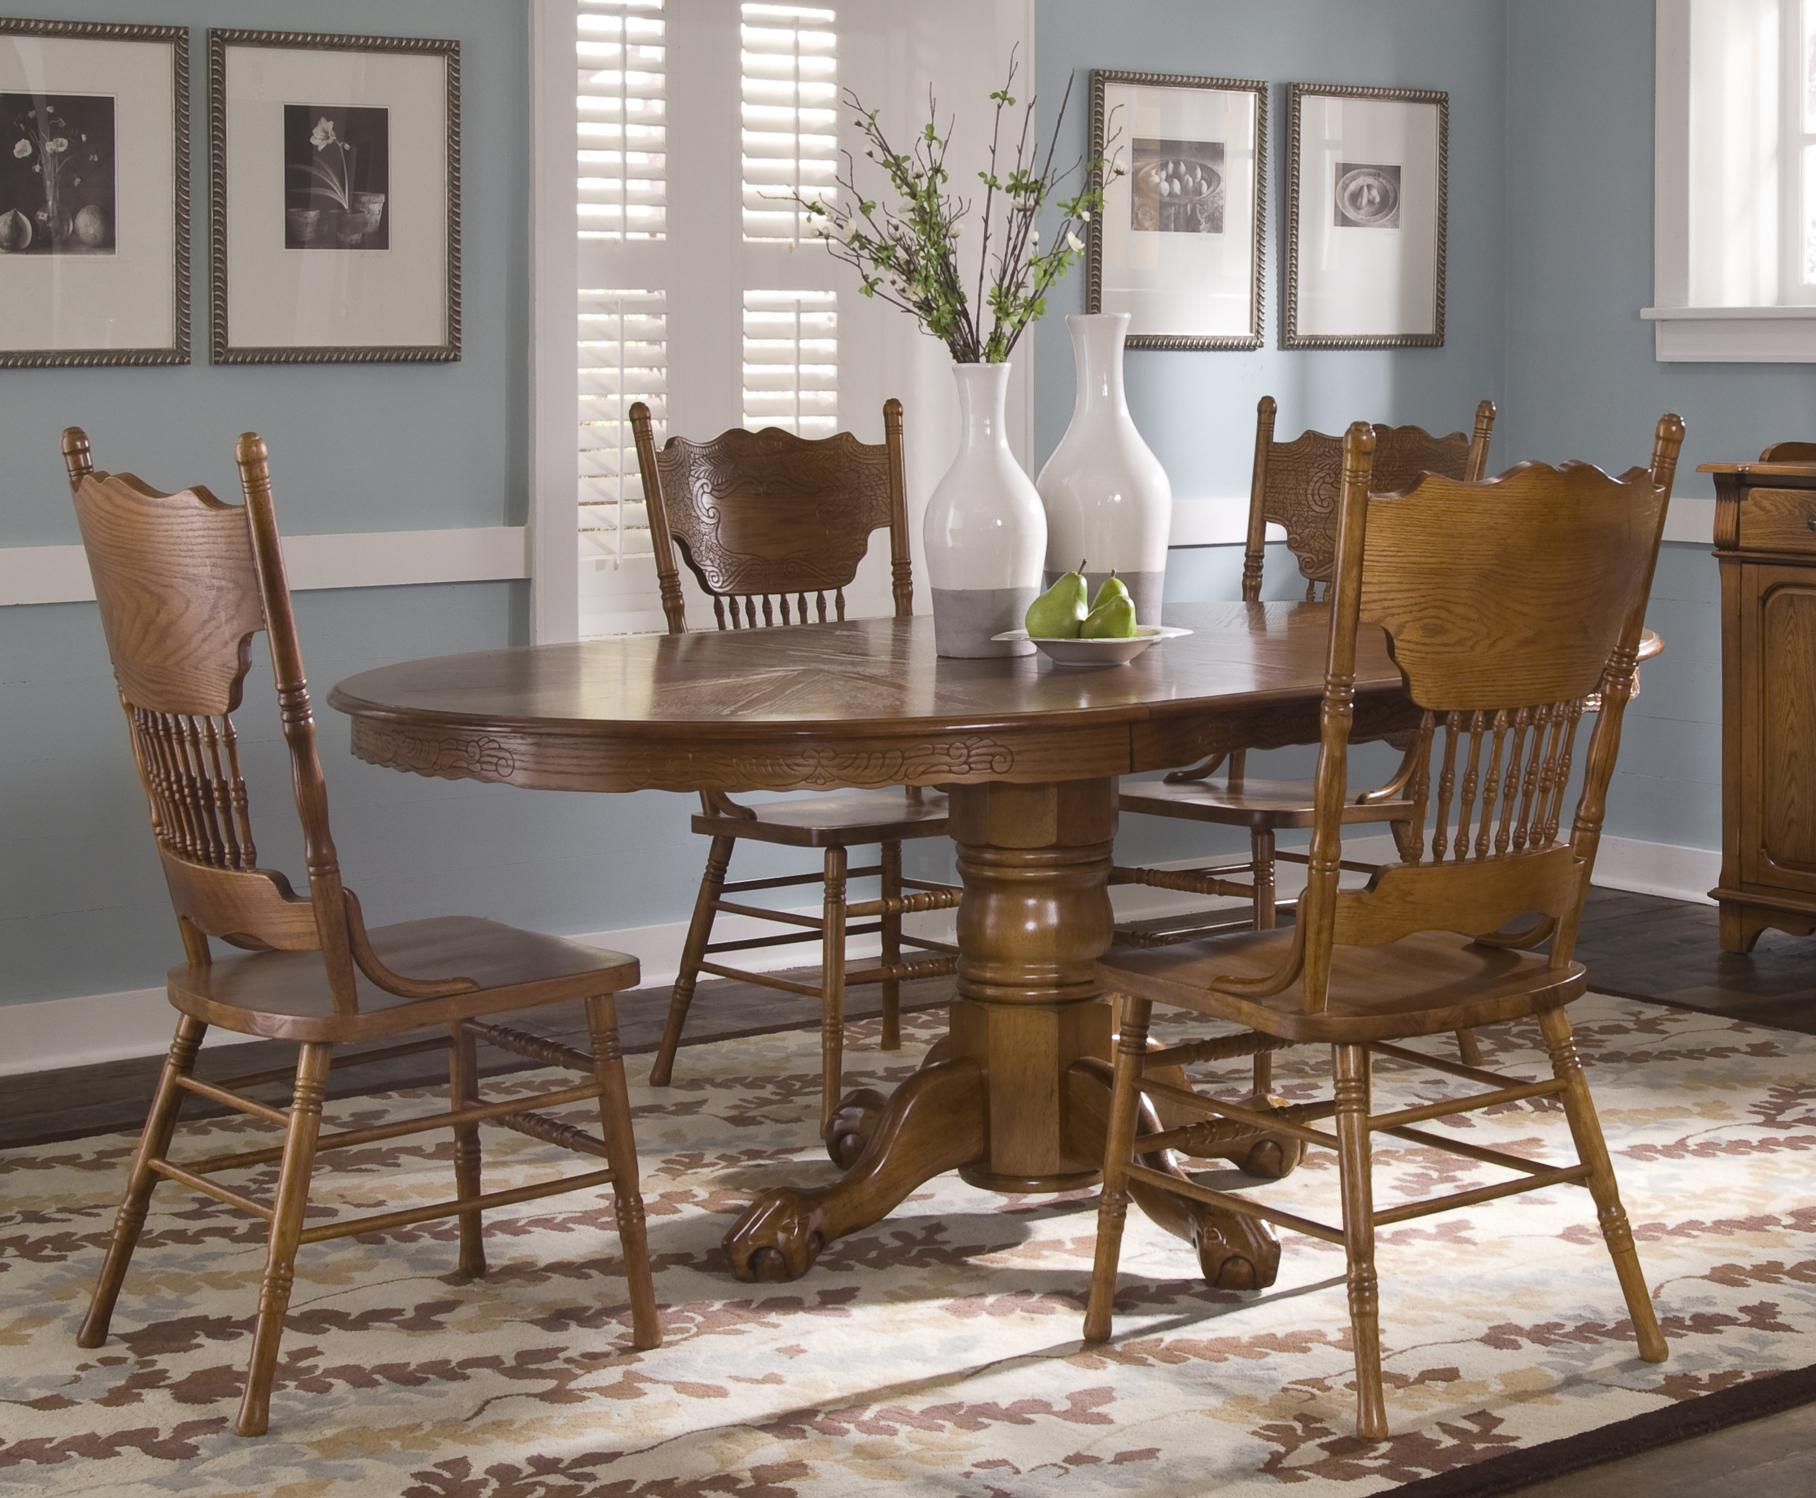 Liberty Furniture Nostalgia Round Pub Table with 2 Press Back Barstools | Northeast Factory Direct | Pub Table and Stool Set Cleveland Eastlake Westlake ... & Liberty Furniture Nostalgia Round Pub Table with 2 Press Back ...